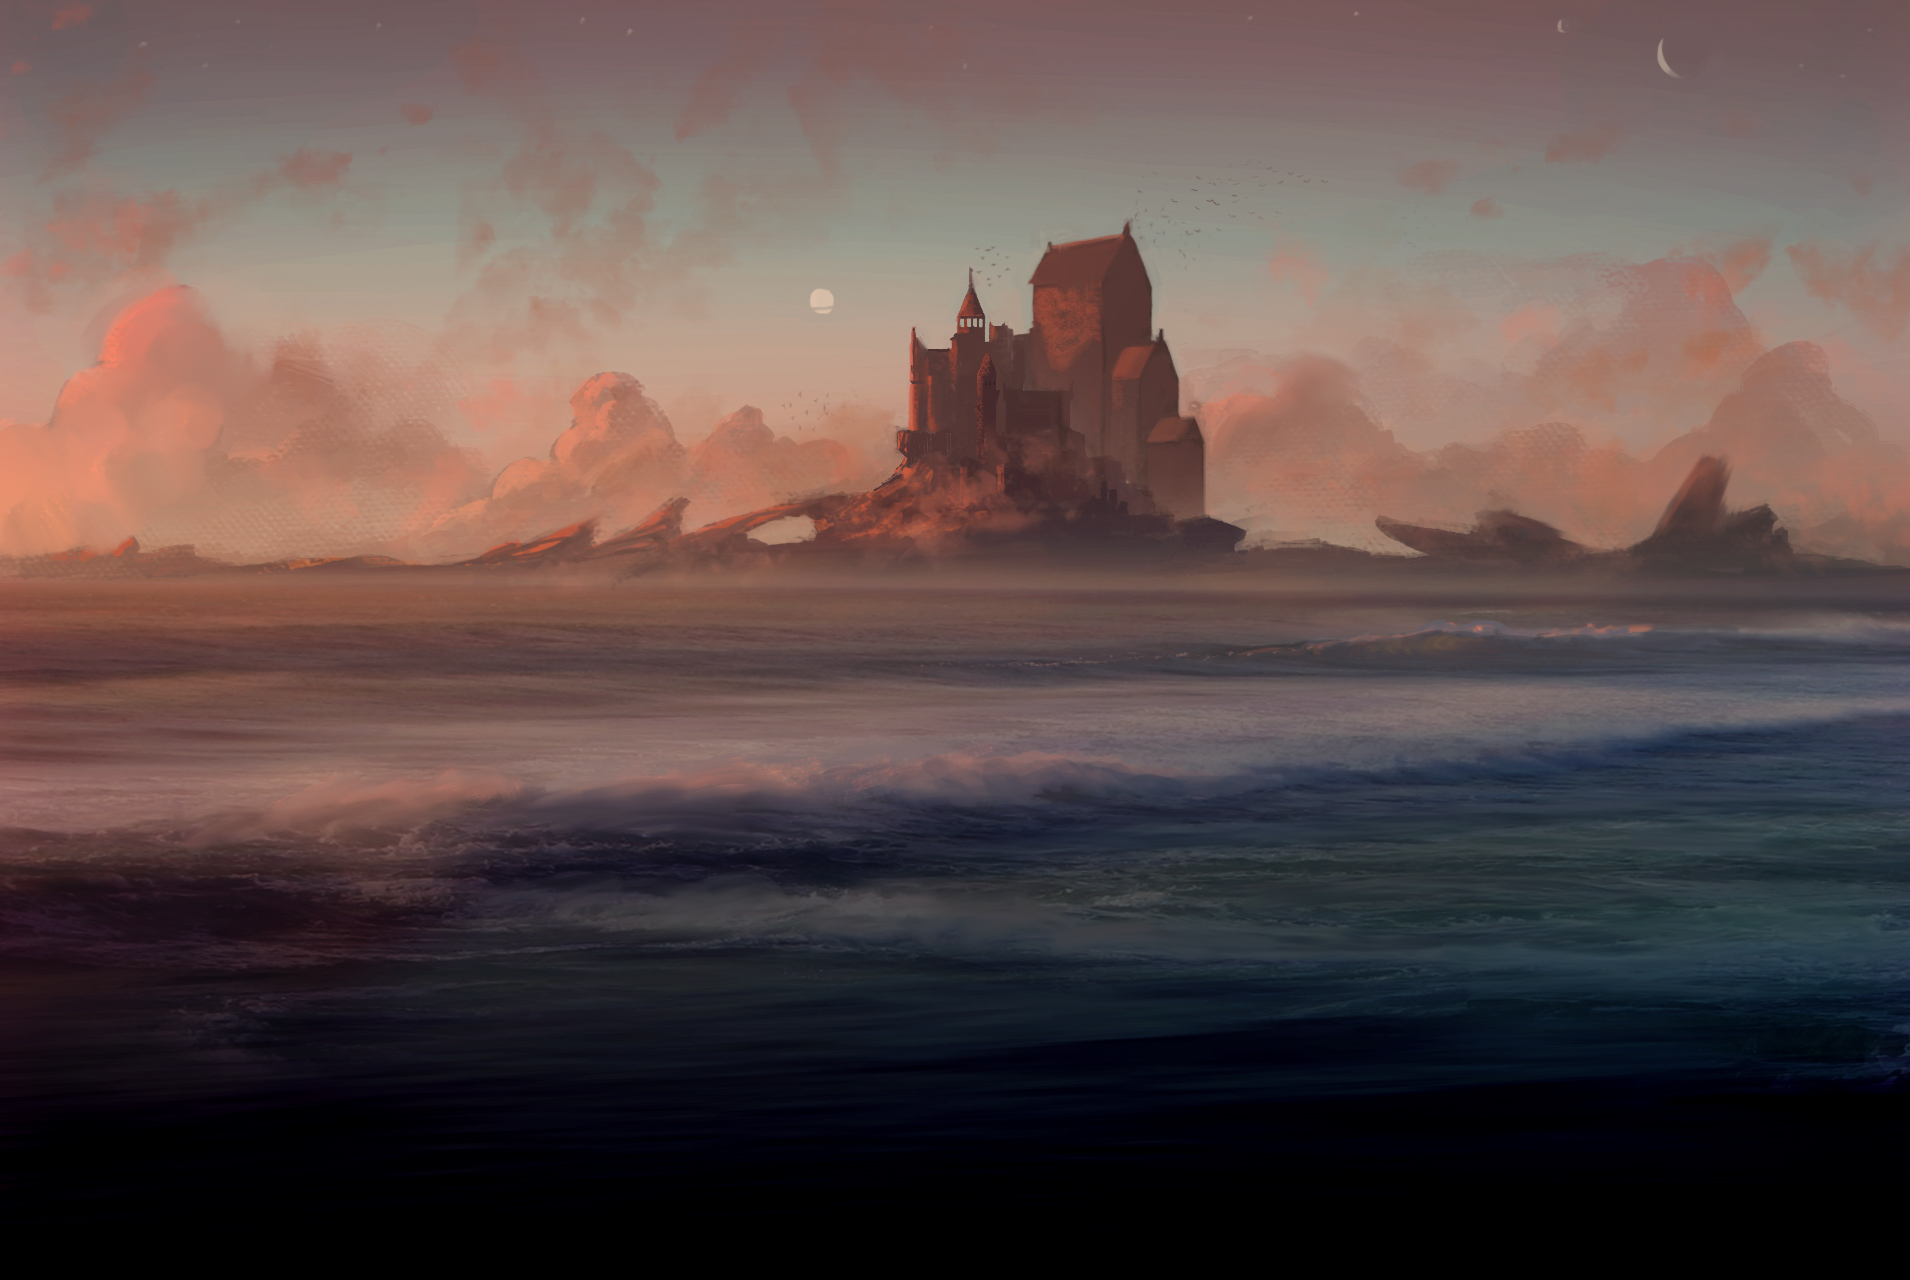 Castle on the Ocean